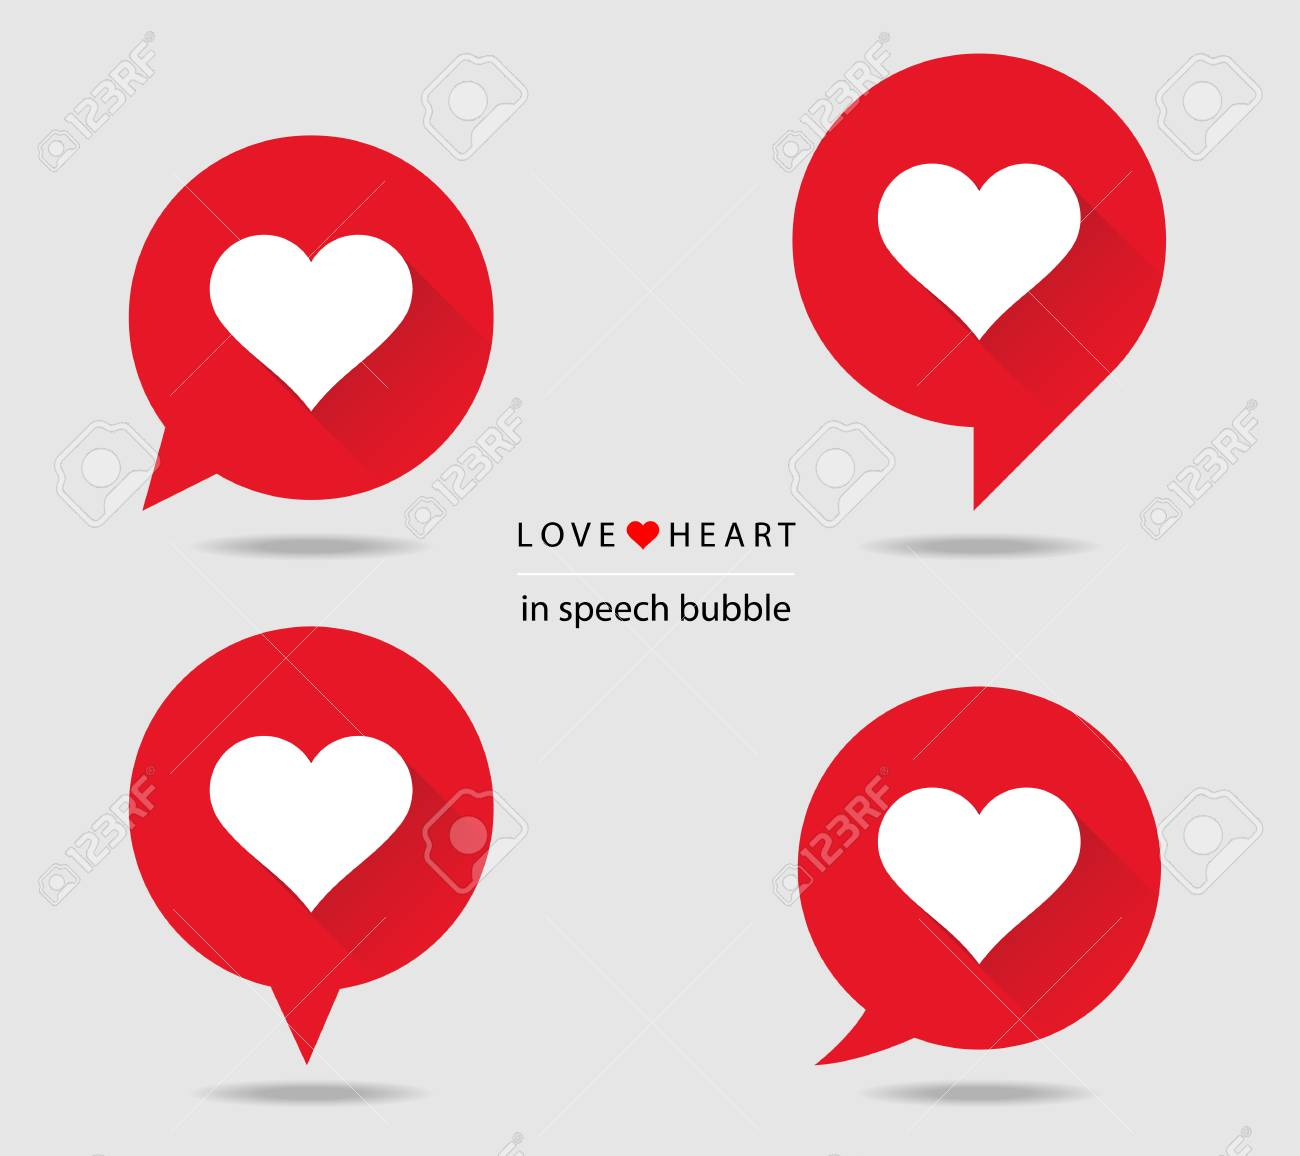 Love heart in speech bubble flat icons with long shadow - 61752733